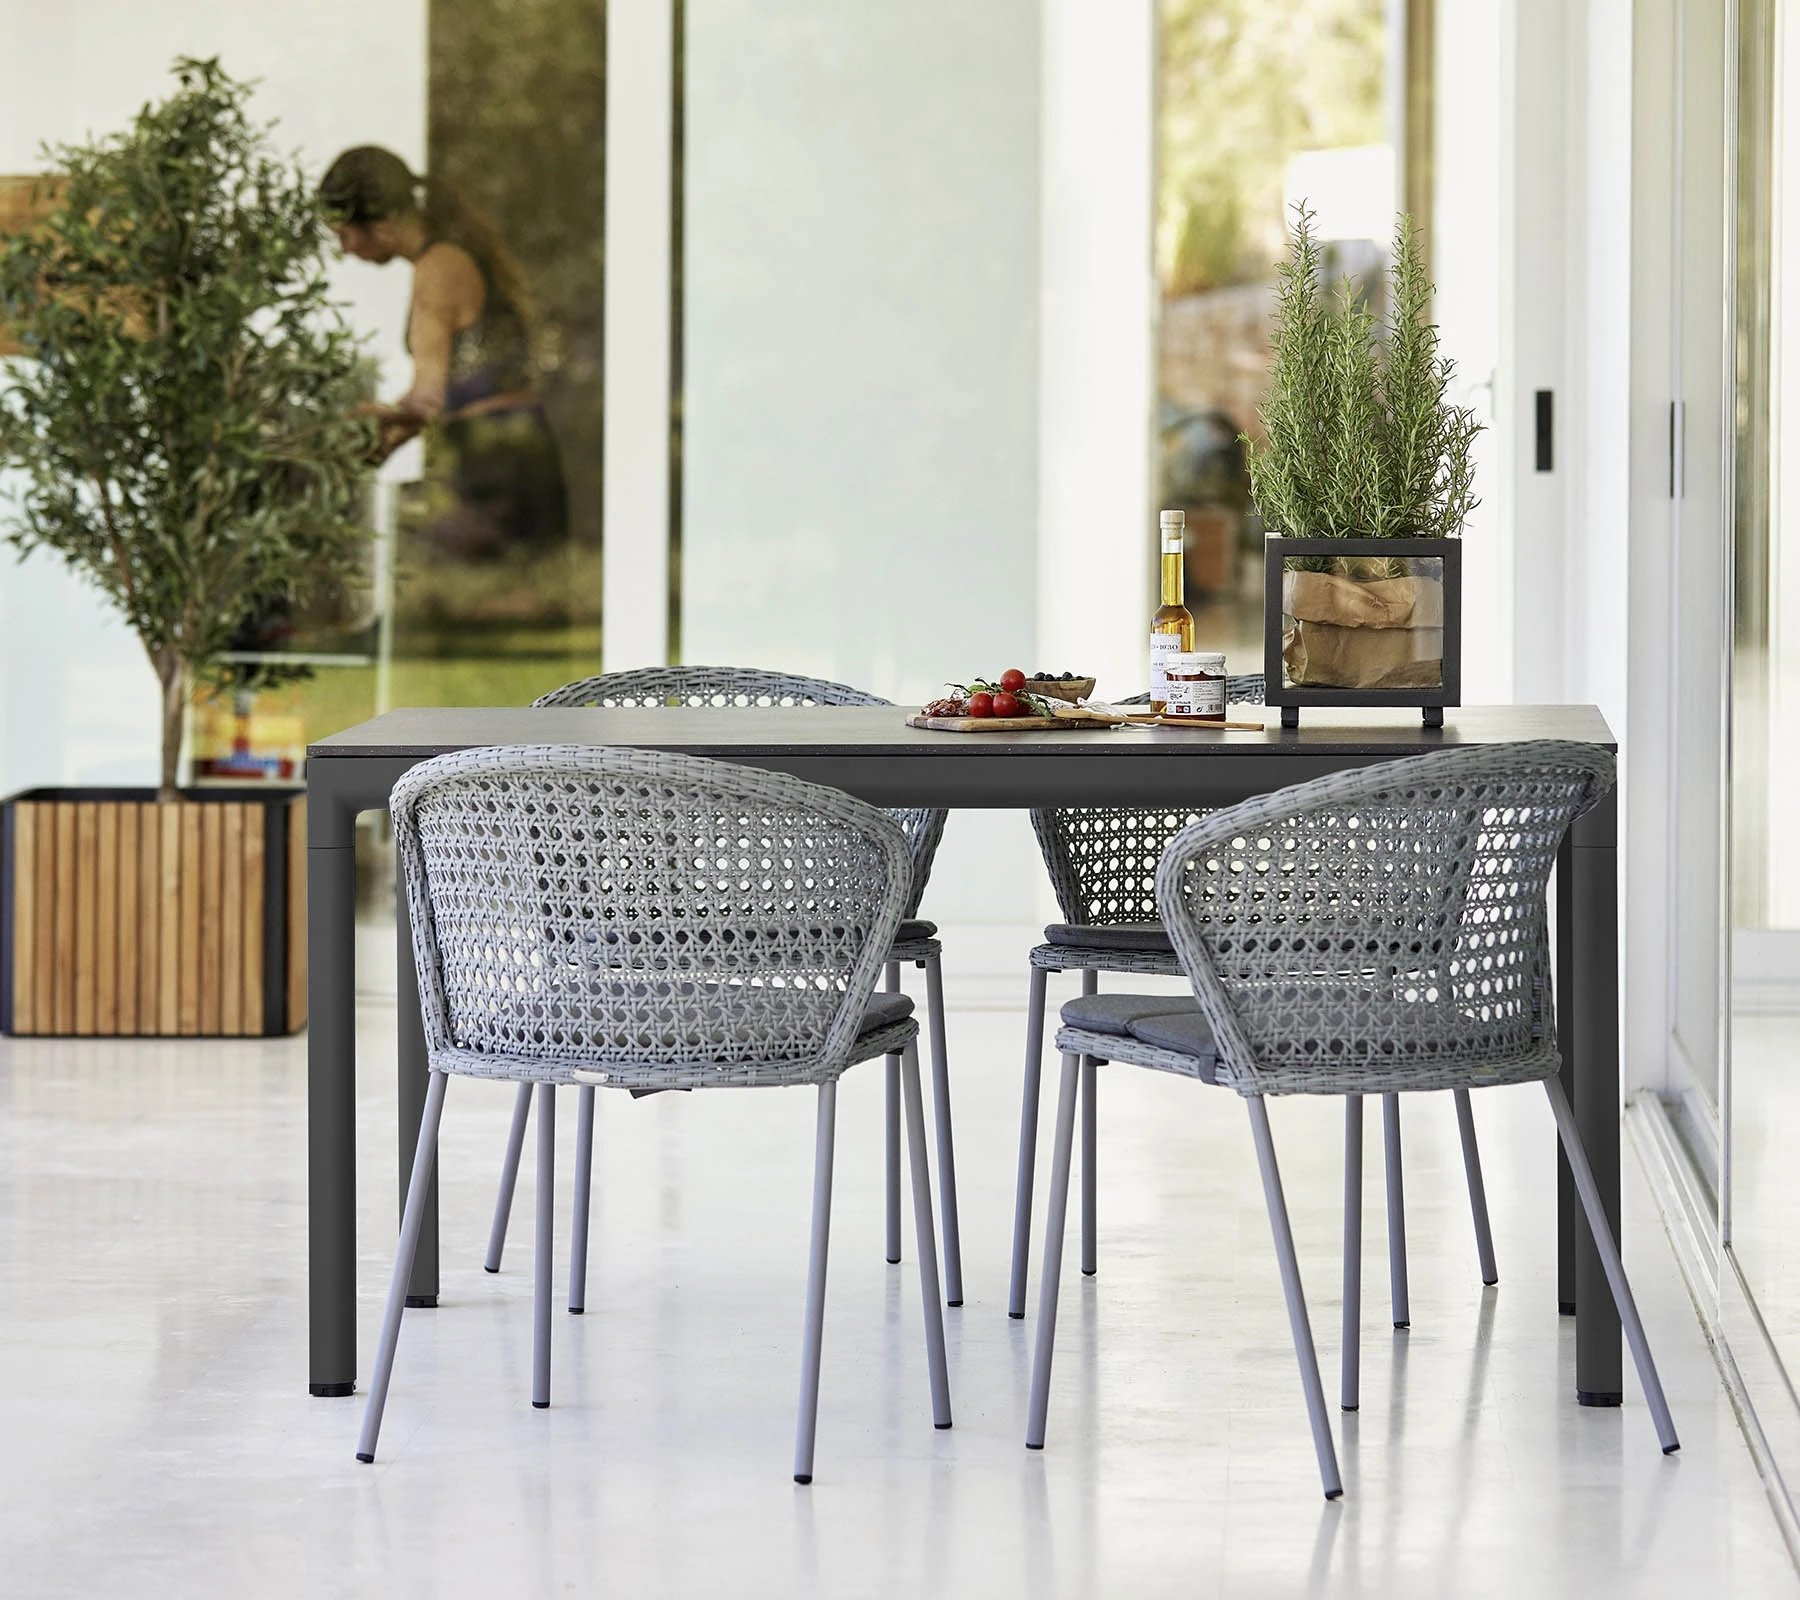 Drop Dining Table from Cane-line, designed by Cane-line Design Team